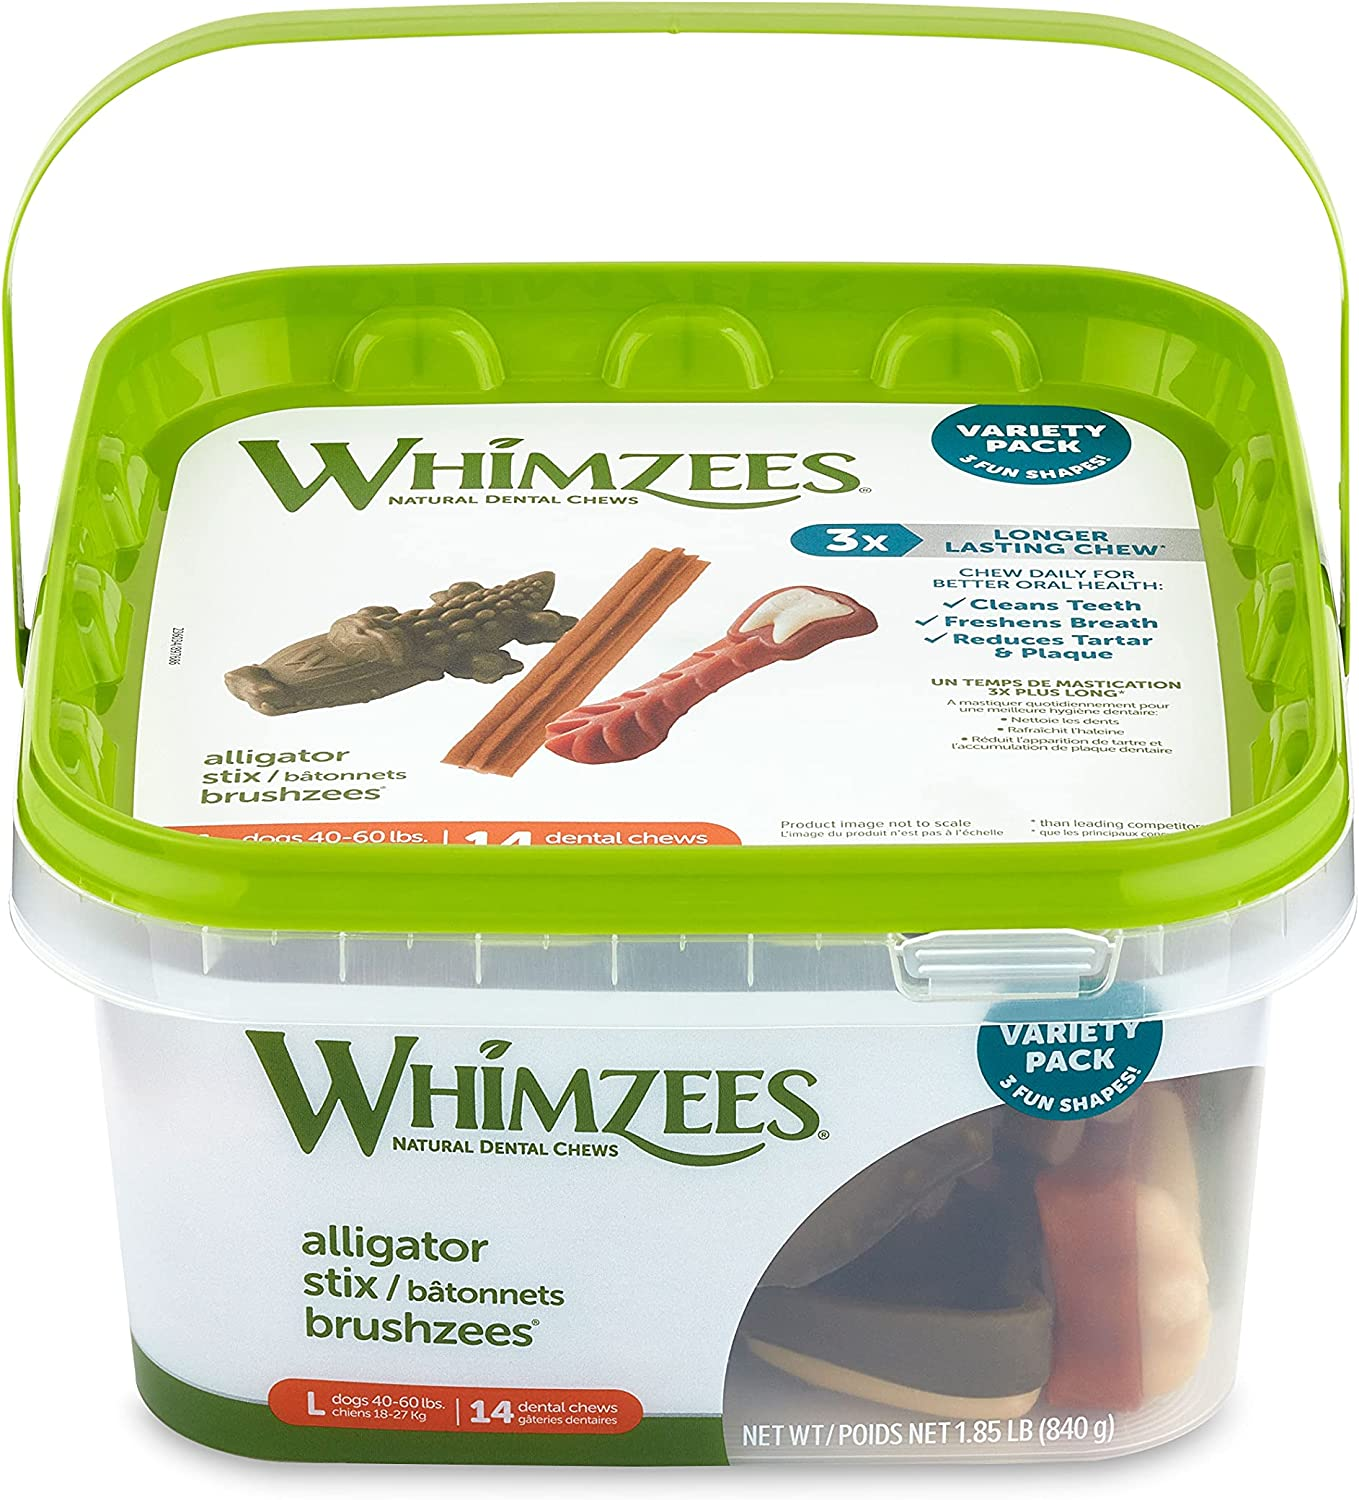 Whimzees Be super welcome Natural Dental Dog Treats Large lbs L 40-60 2021 spring and summer new For Dogs